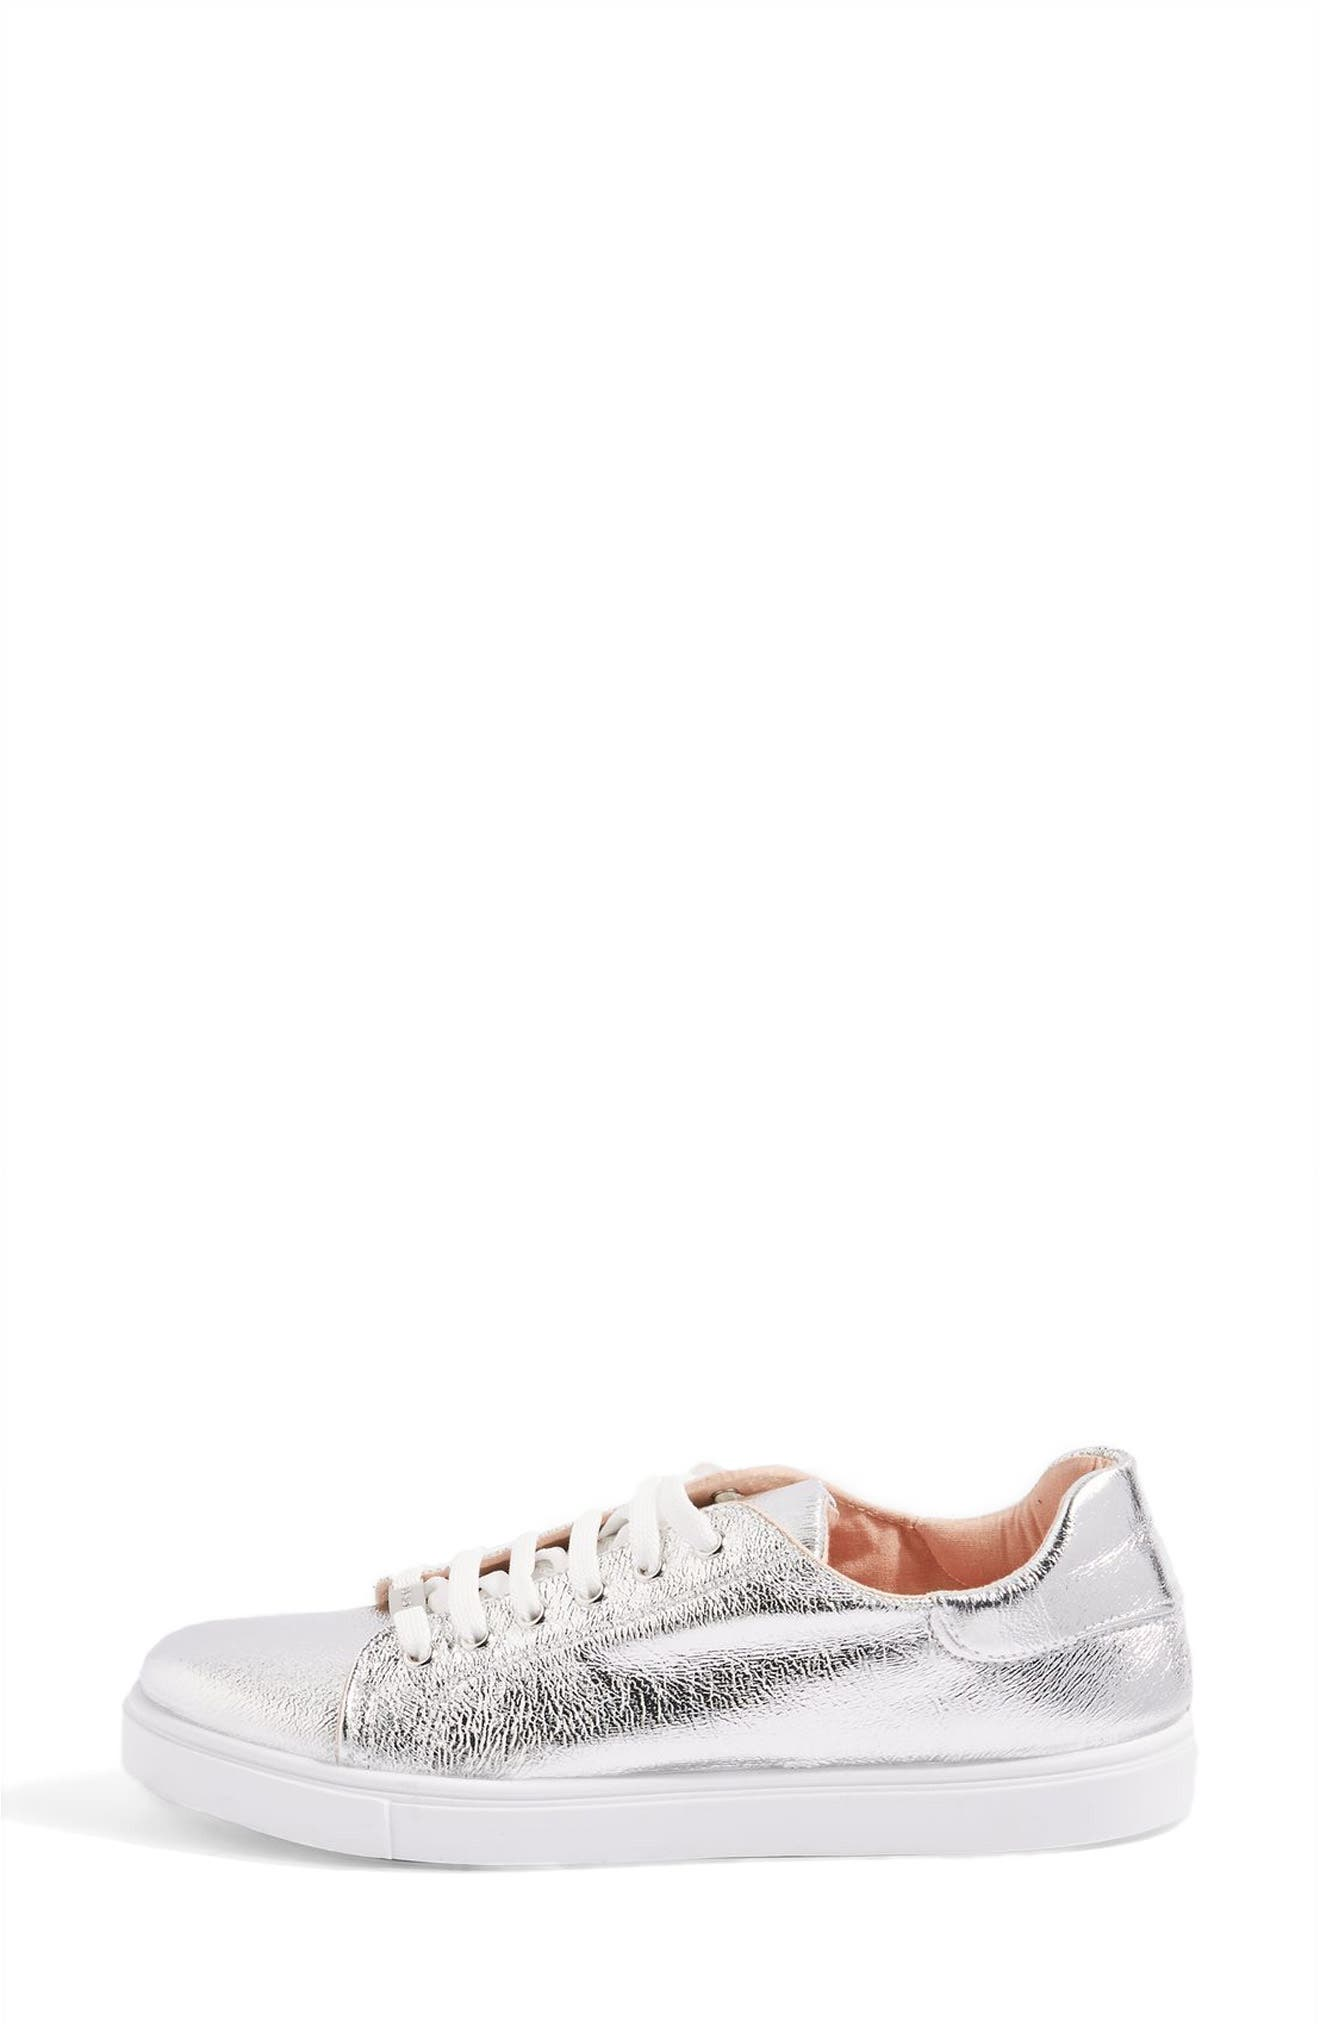 Cosmo Metallic Lace-Up Sneaker,                             Alternate thumbnail 2, color,                             040